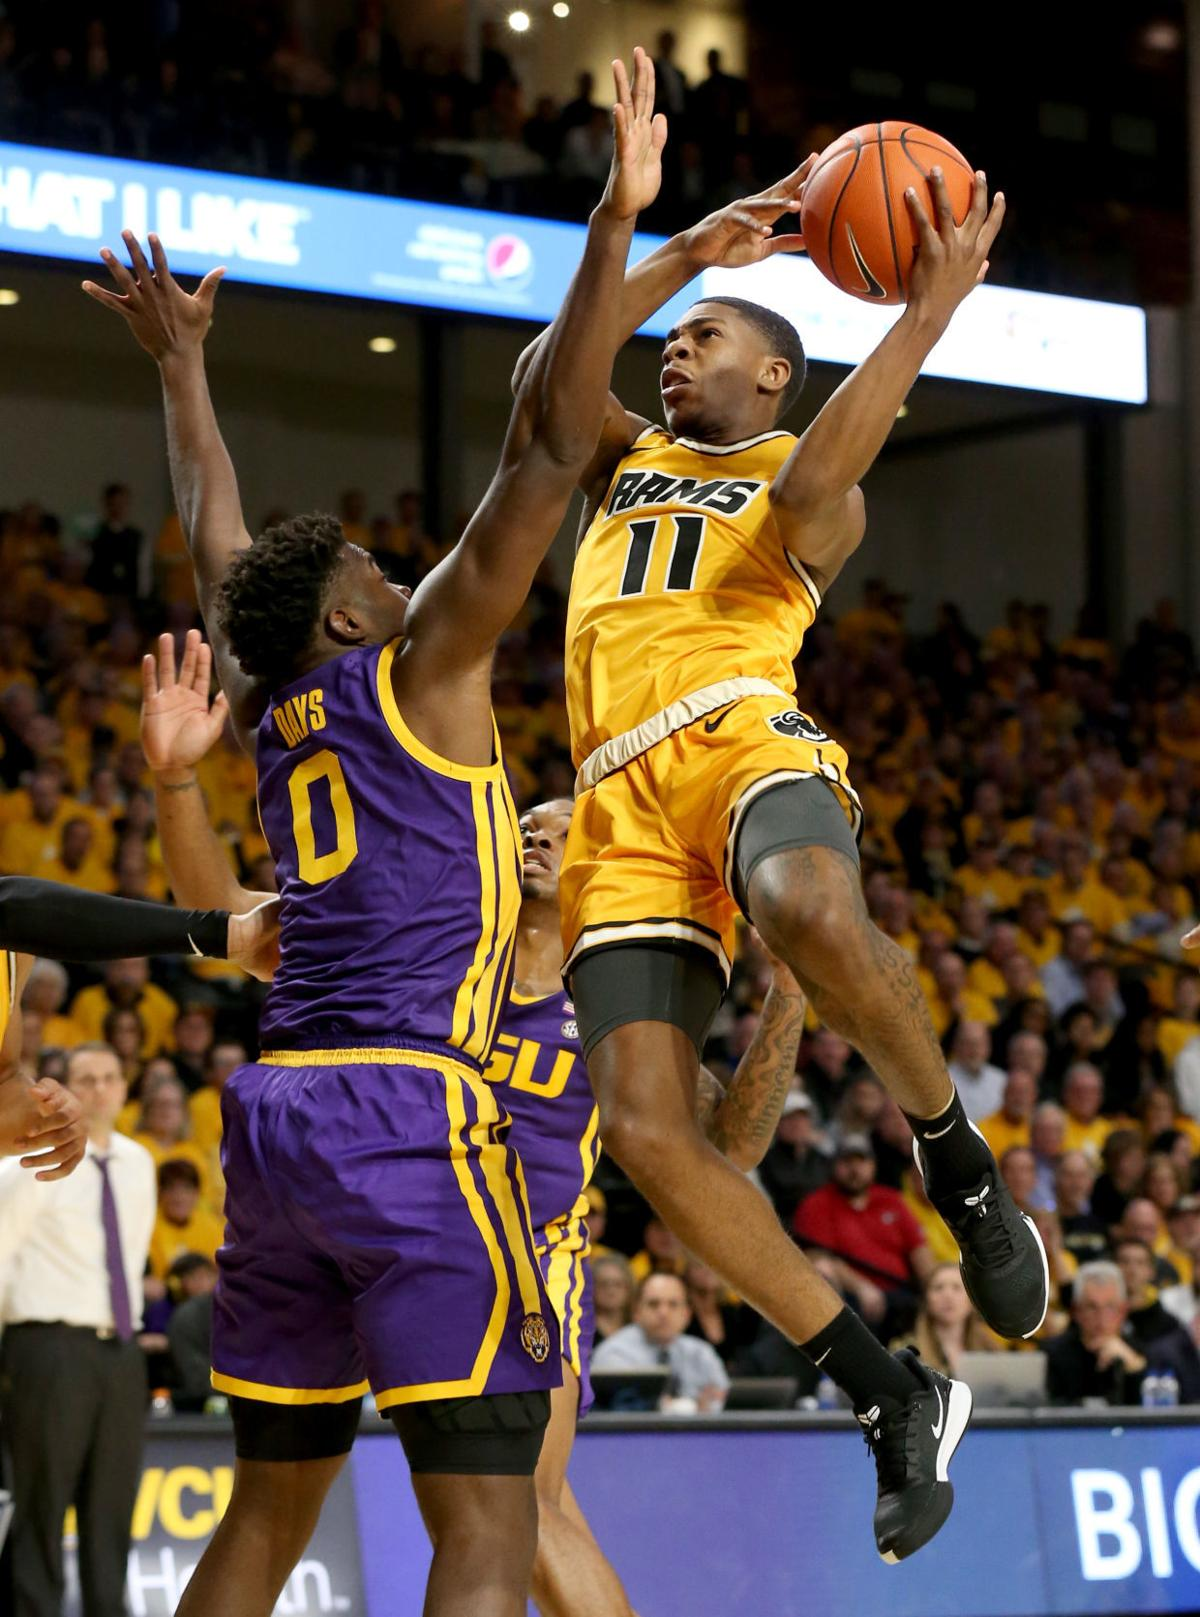 VCU men's basketball game vs. LSU